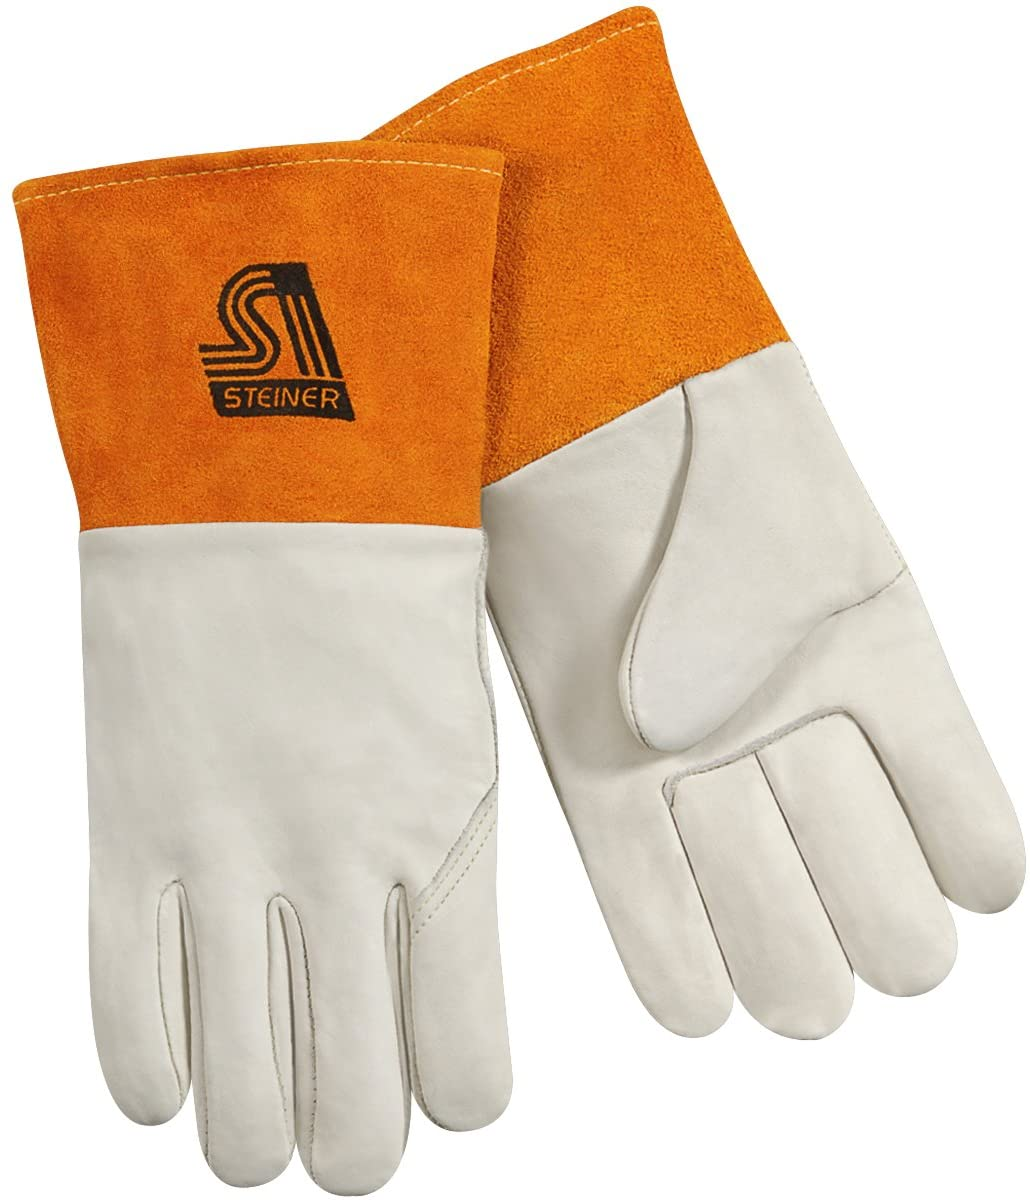 Steiner 0207-M MIG Gloves, Tan Grain Cowhide Unlined 4-Inch Rust Cuff, Medium